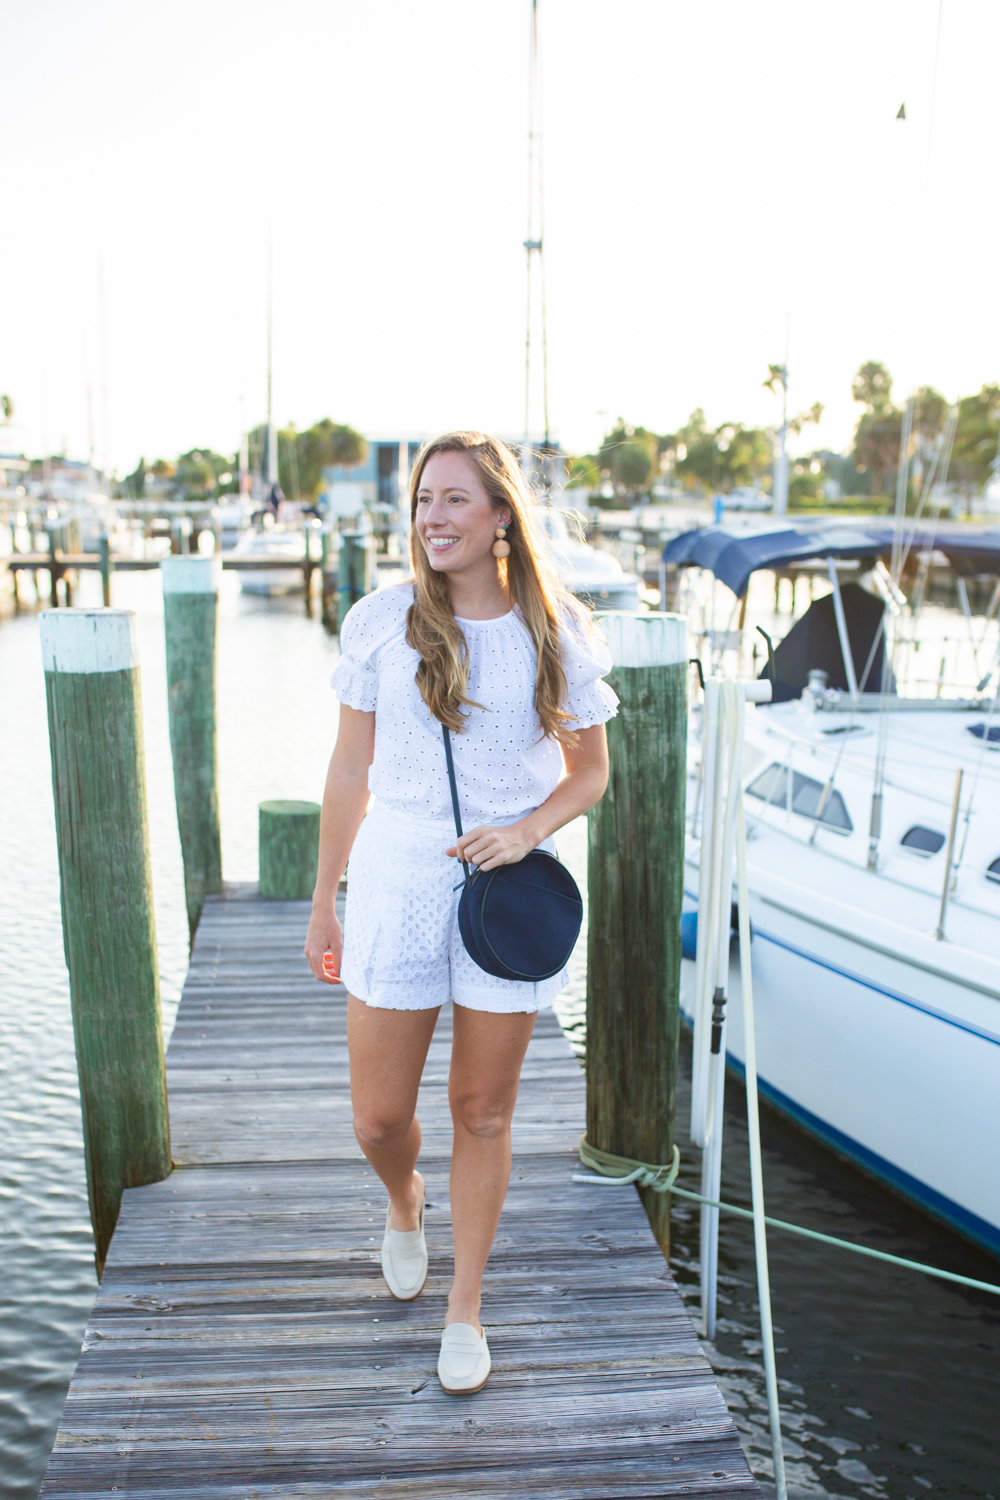 Classic White Shorts Guide / Preppy Style / Preppy Outfit / Classic Outfit / All American Style / White Shorts / Summer Shorts / Classic Shorts  / Summer Outfit Inspiration - Sunshine Style, A Florida Based Fashion and Lifestyle Blog